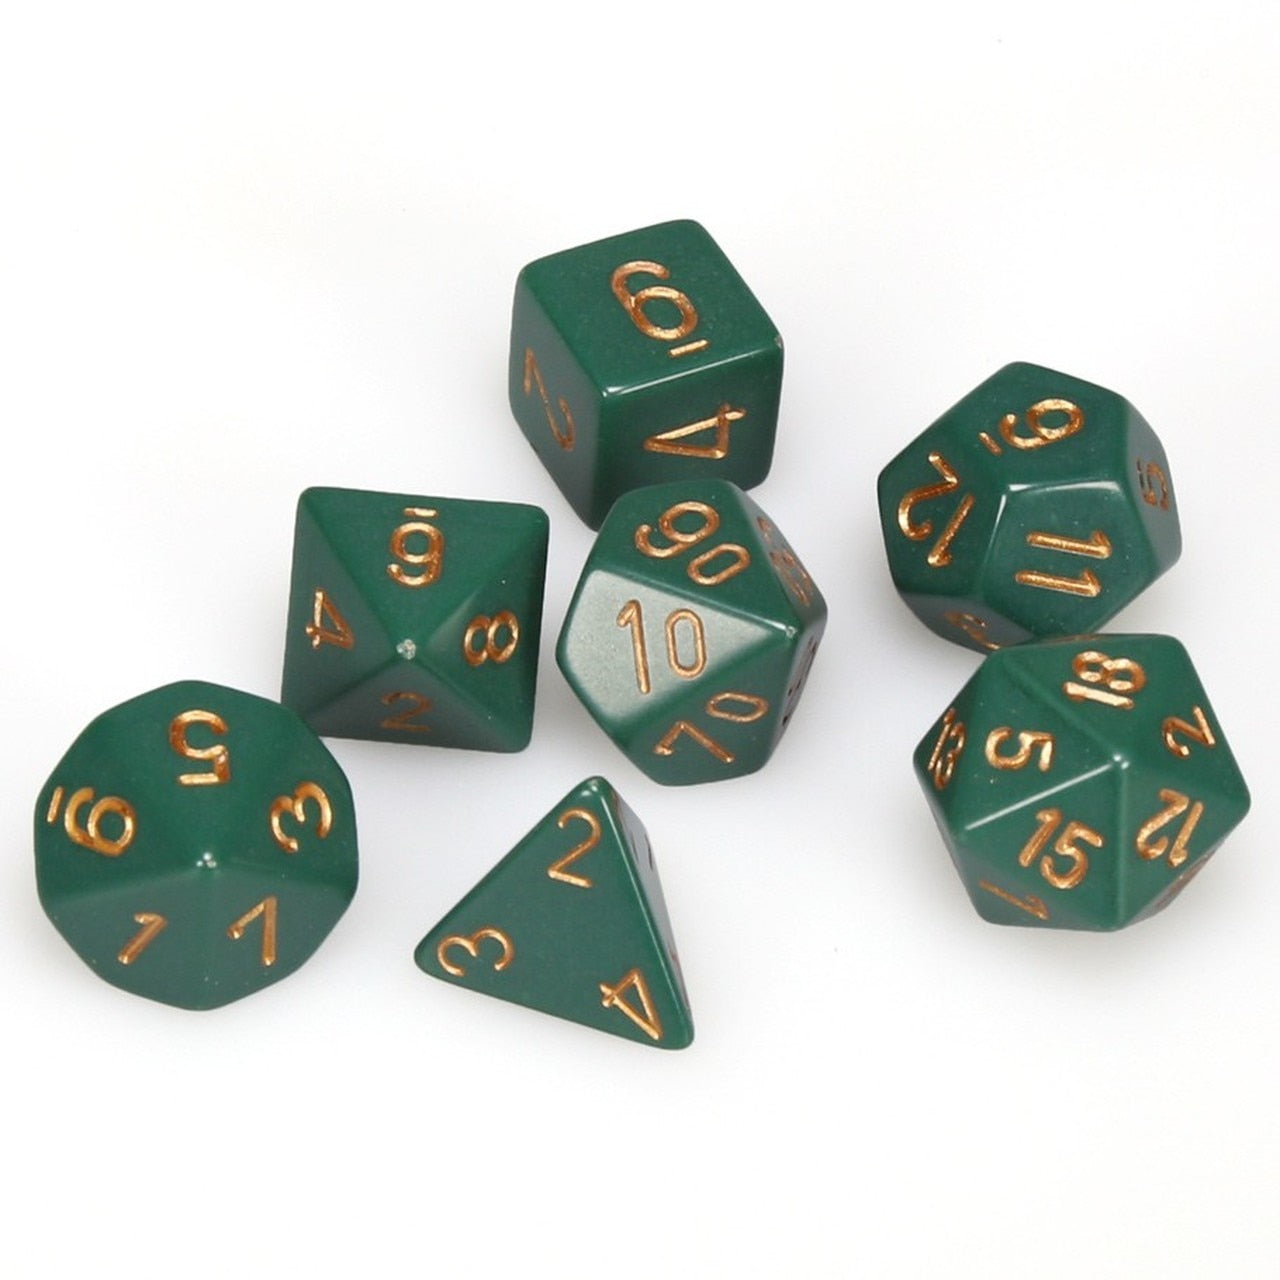 Chessex Opaque - Dusty Green/Copper - 7 Dice Set | SKYFOX GAMES